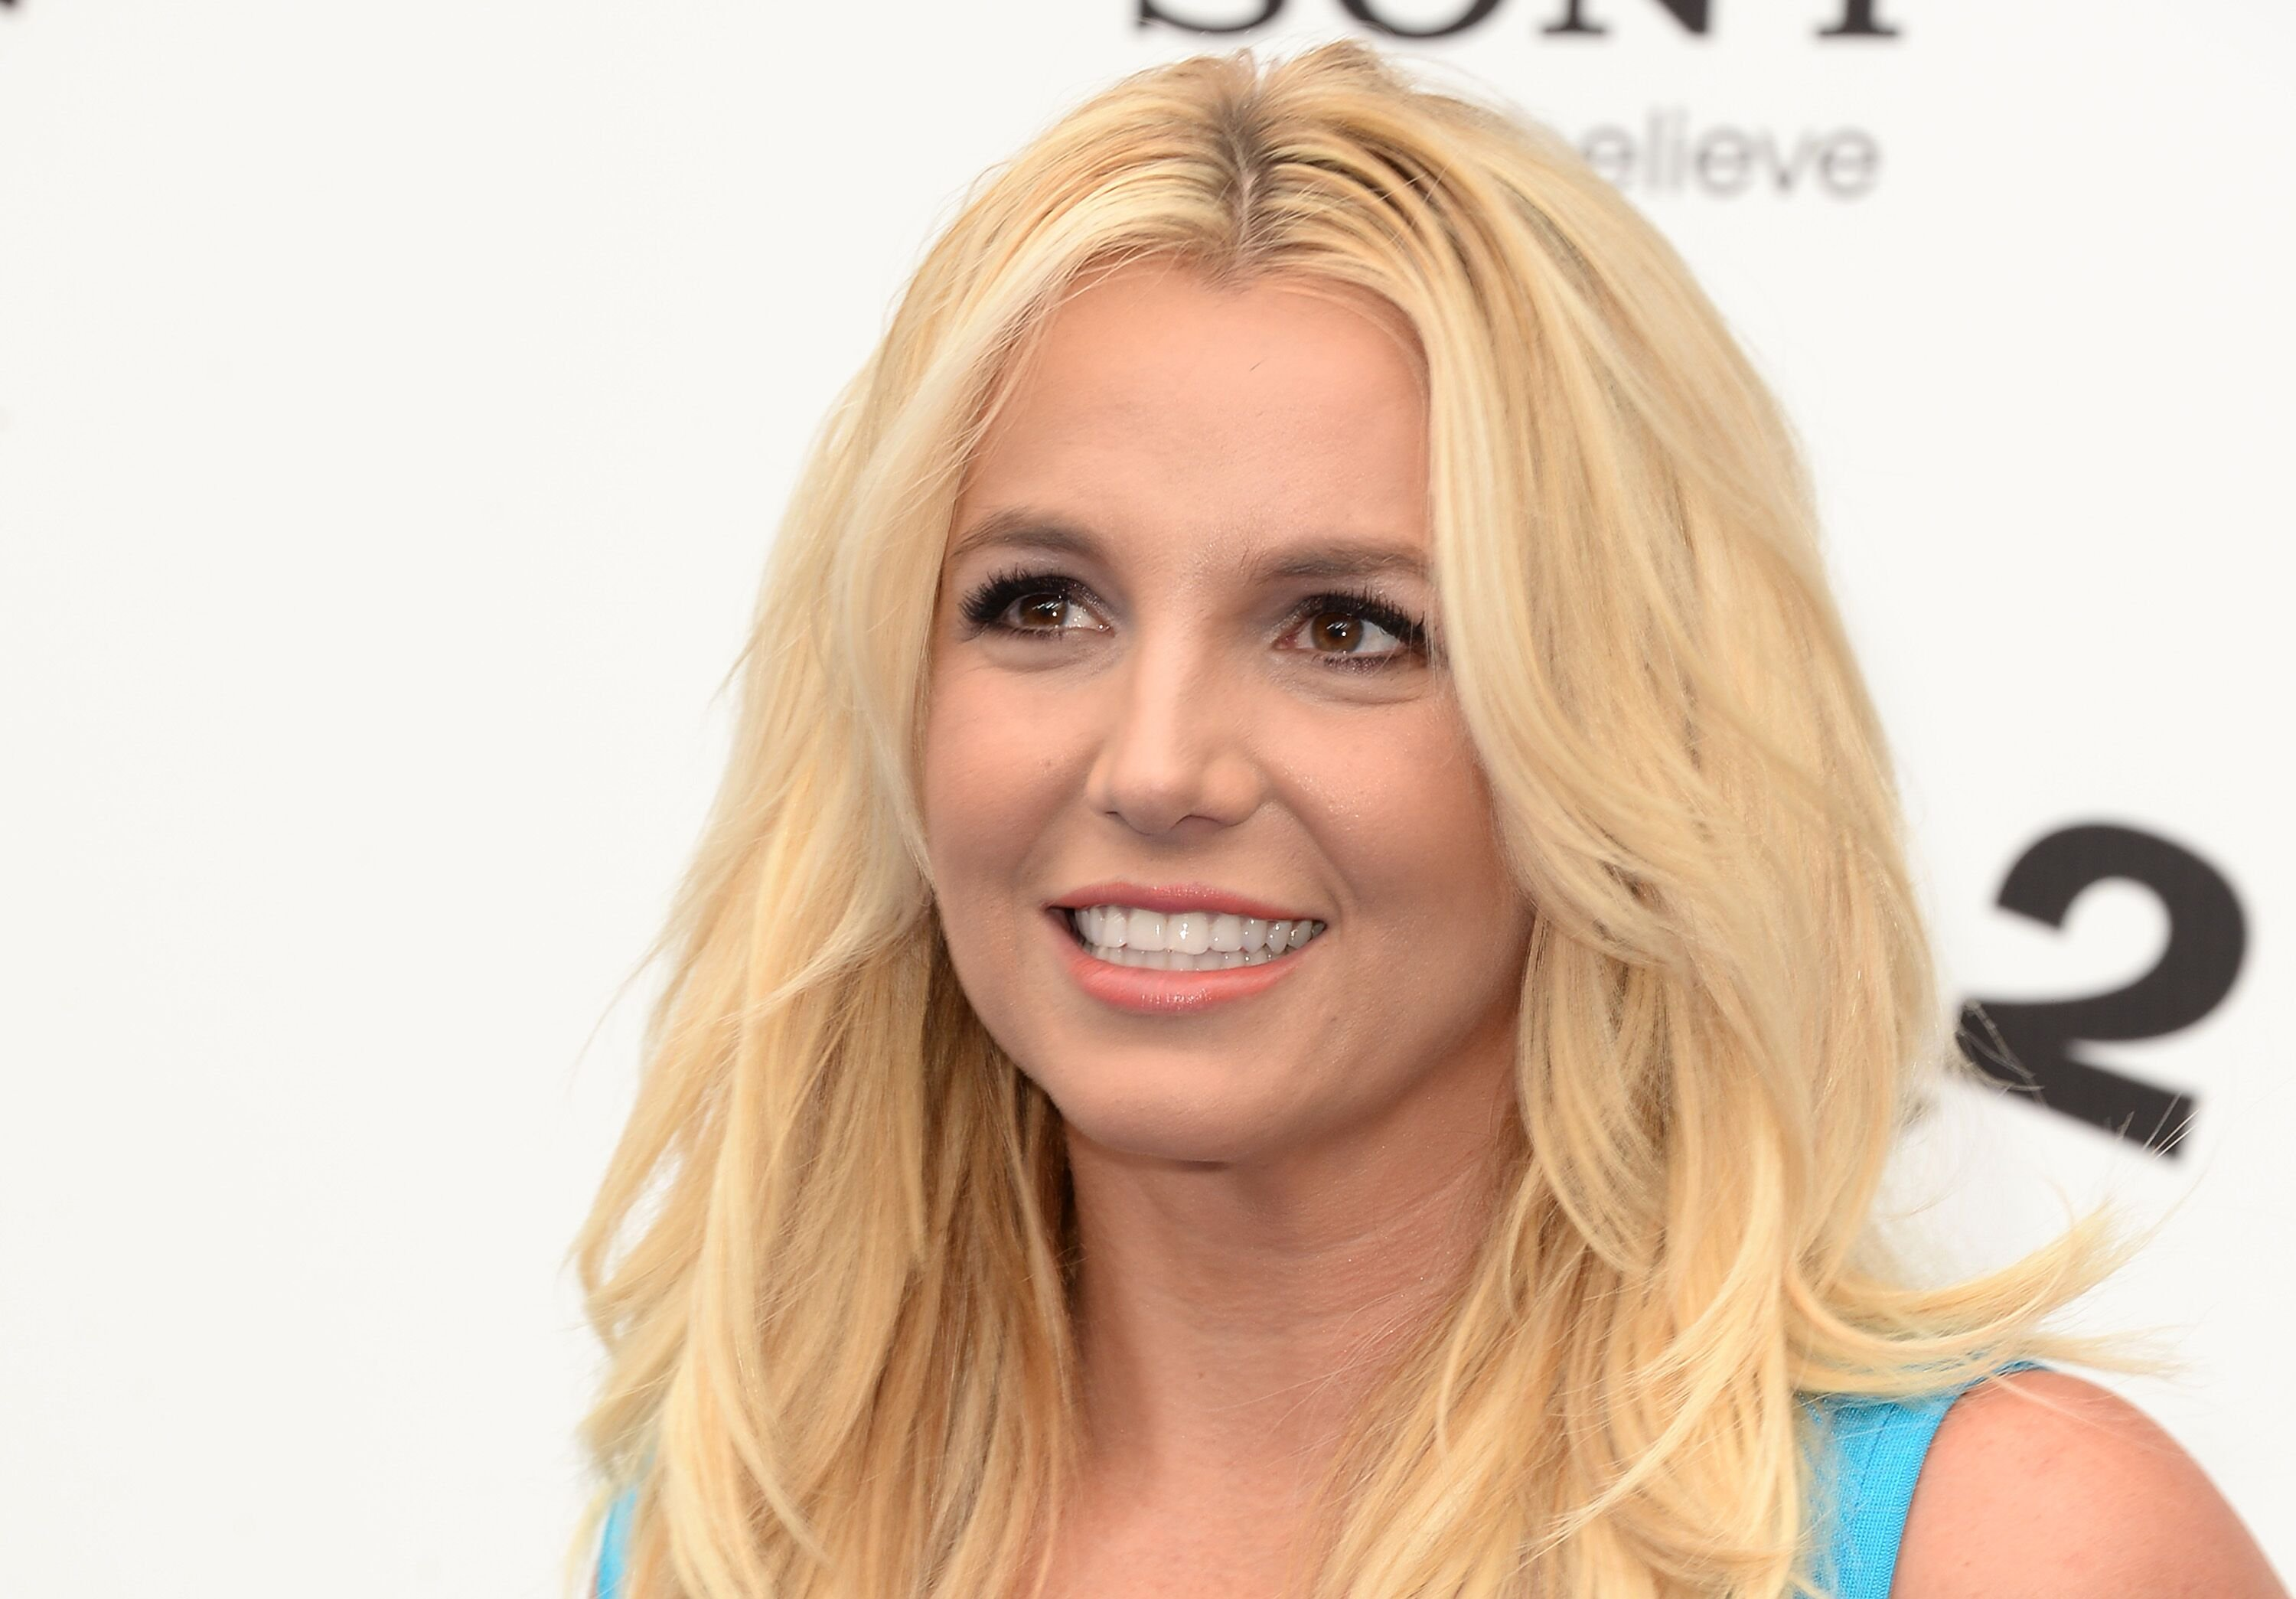 Image Credit: Getty Images / Singer Britney Spears poses for a picture.